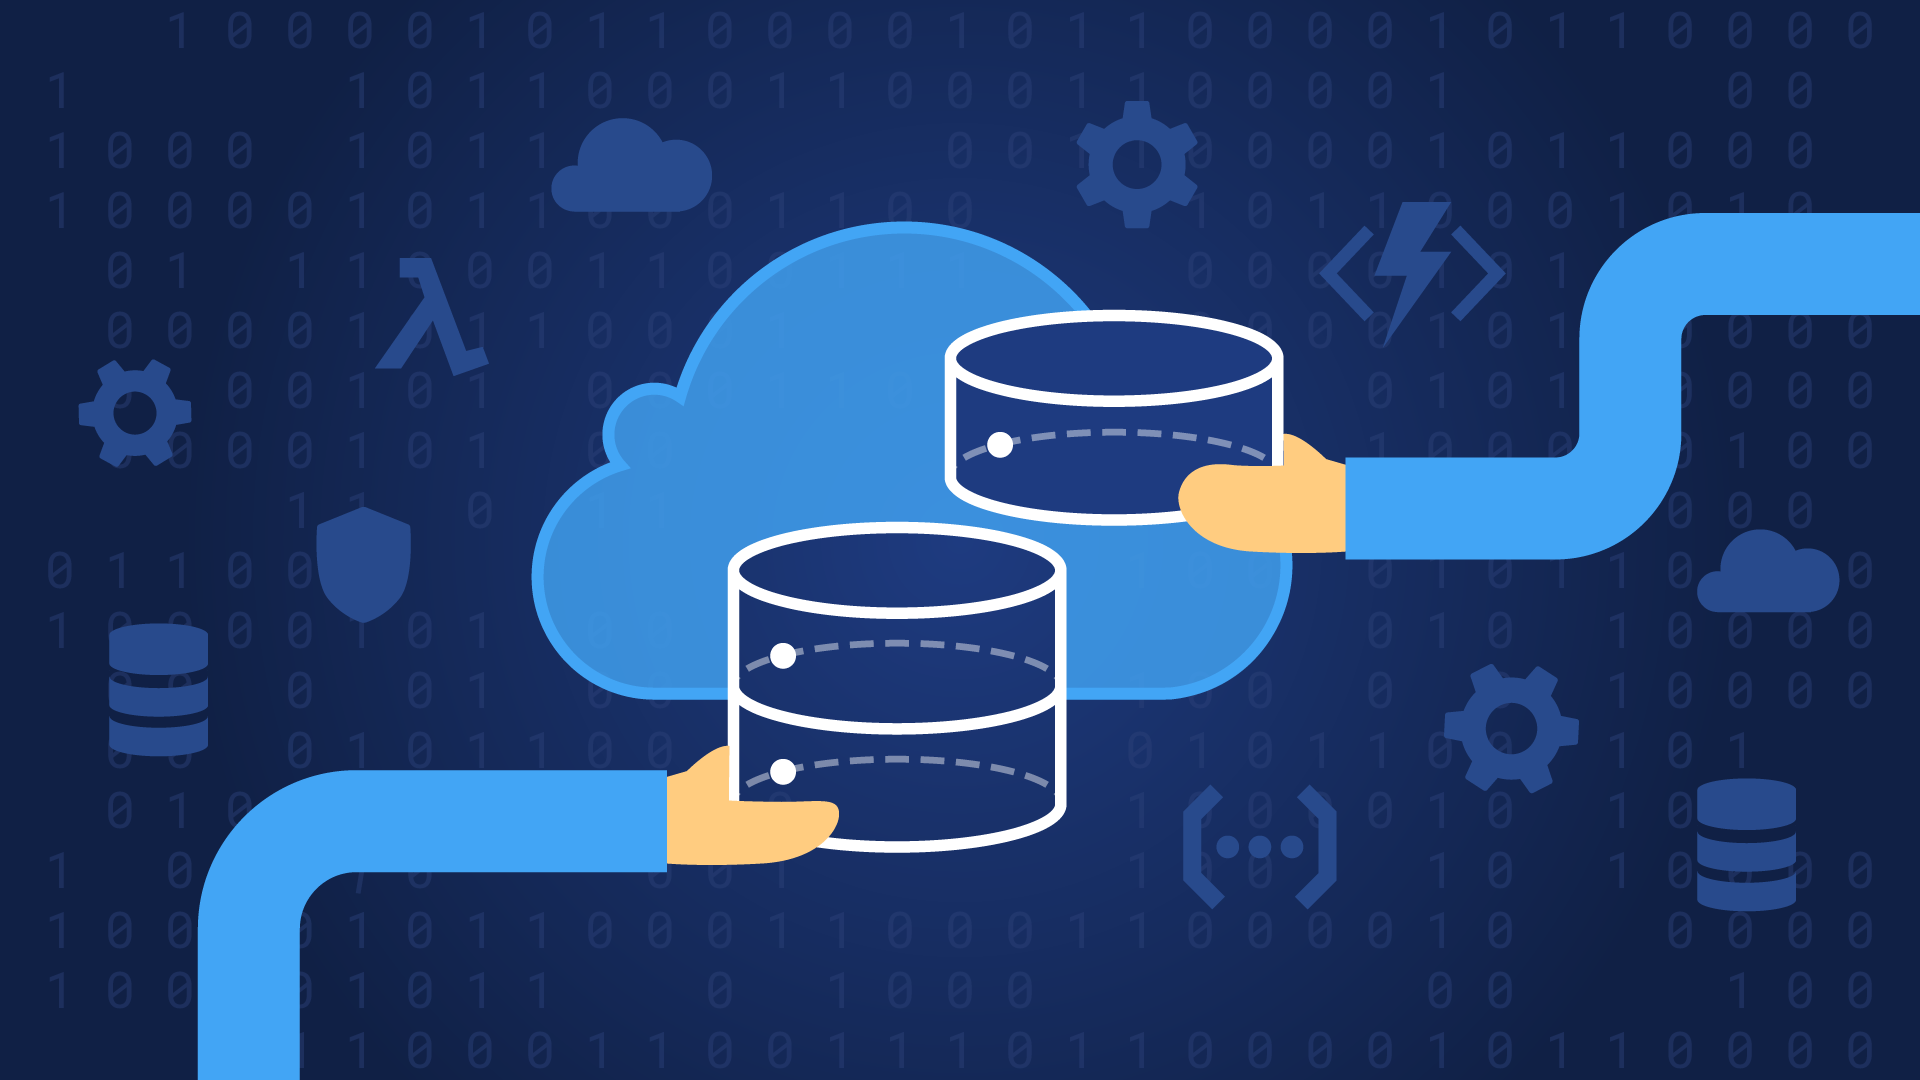 Serverless Computing 101: What it is, Core Elements of its Architecture, and Key Players Overview